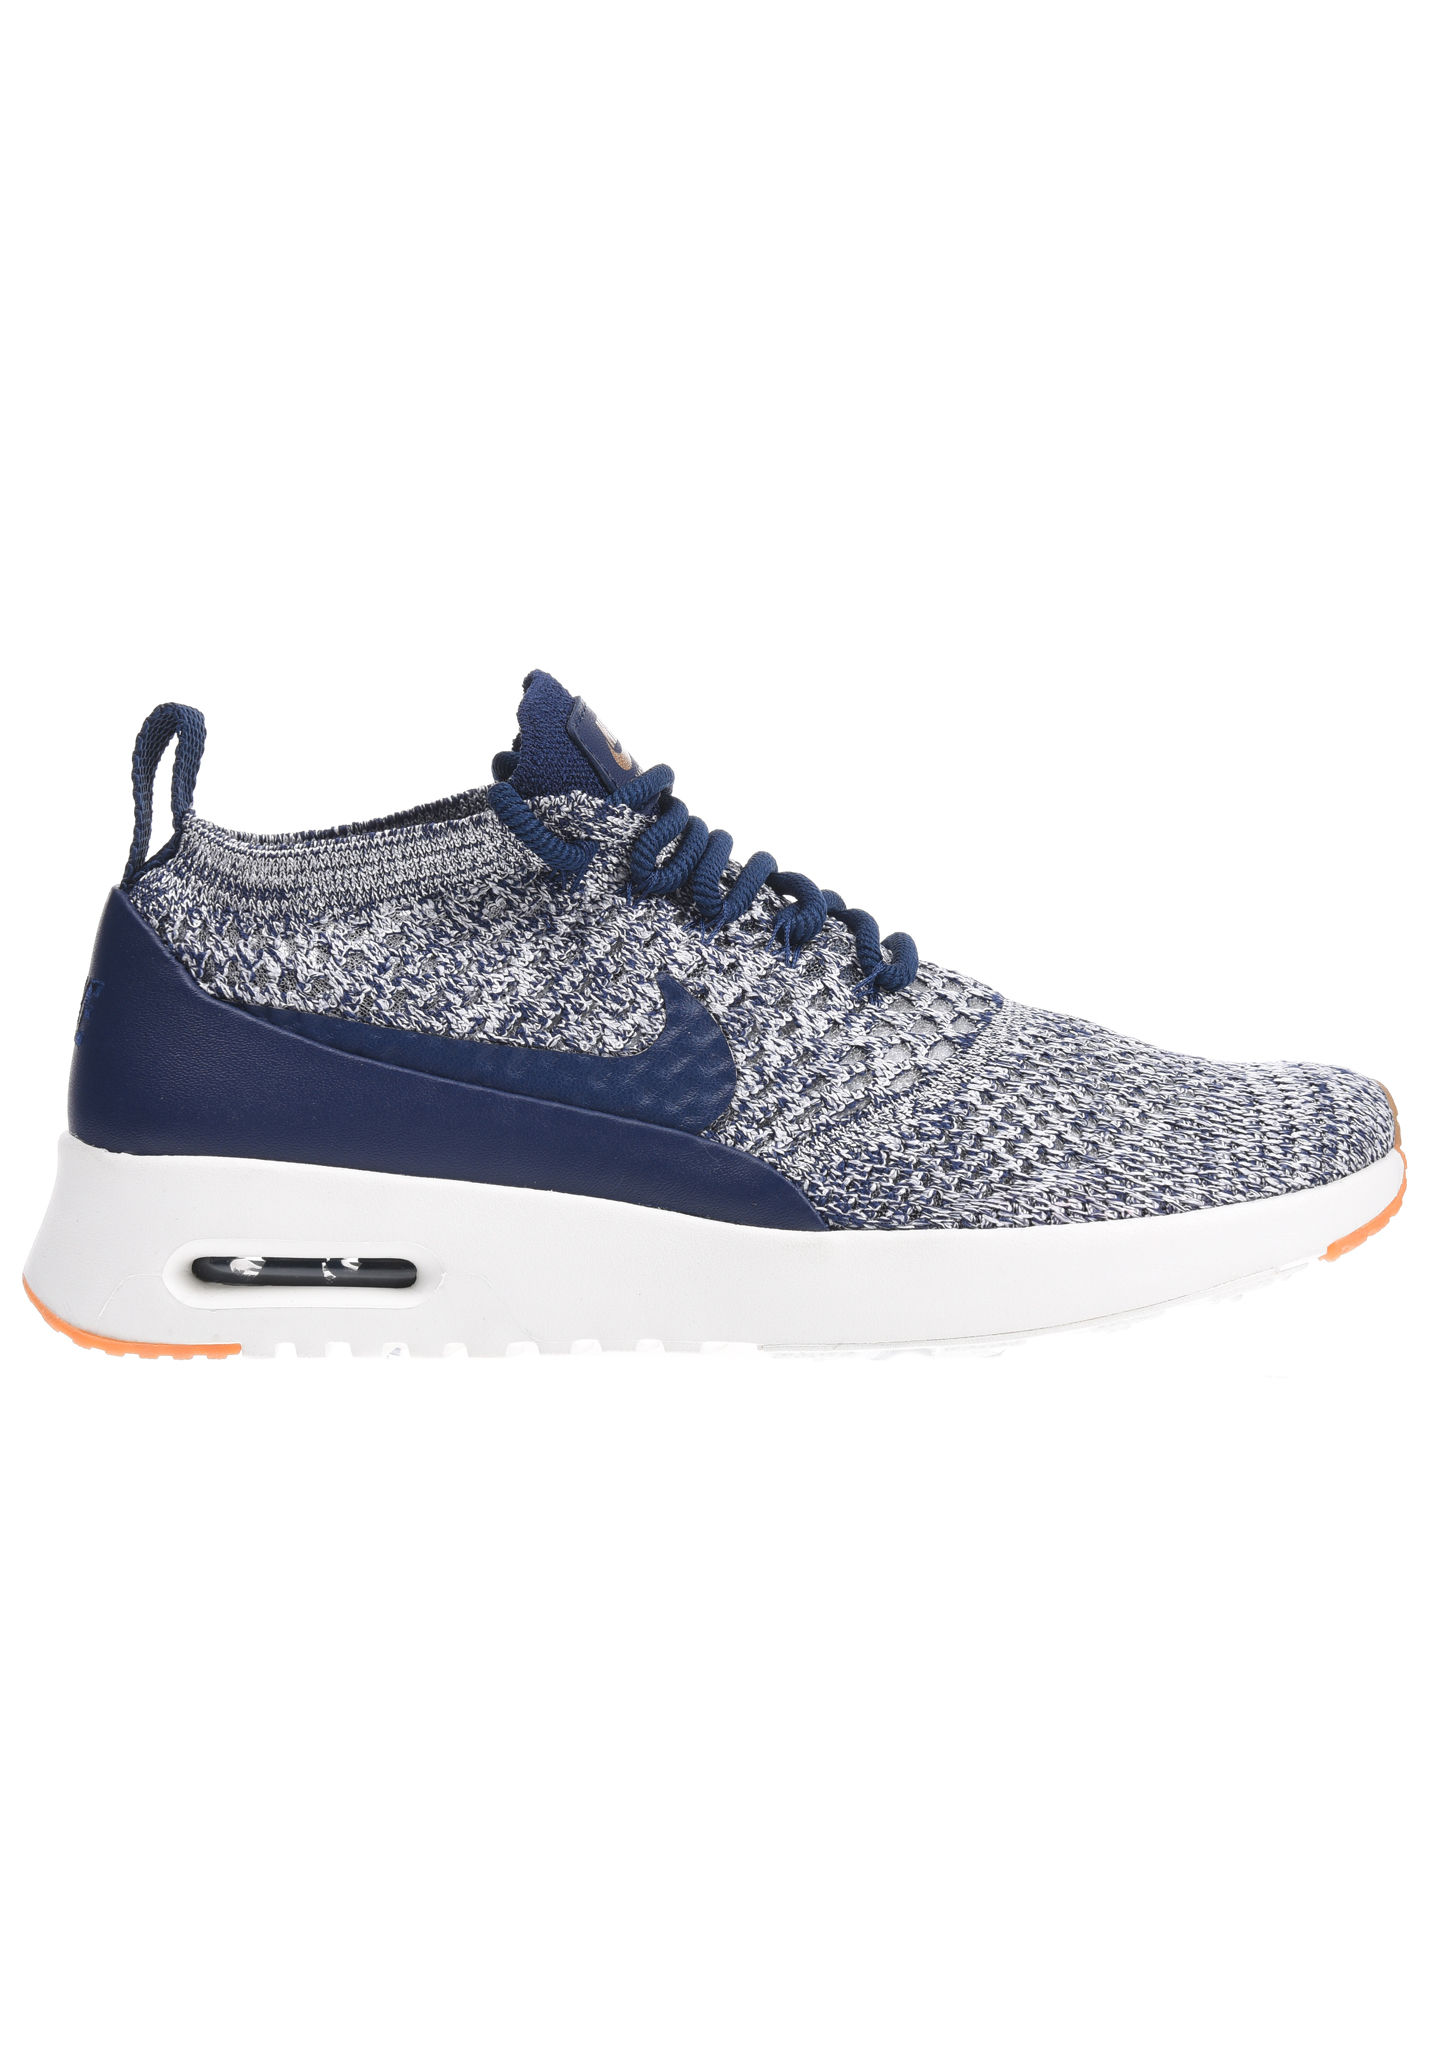 brand new 7e1bf a4d25 NIKE SPORTSWEAR Air Max Thea Ultra Fk - Sneakers voor Dames - Blauw -  Planet Sports